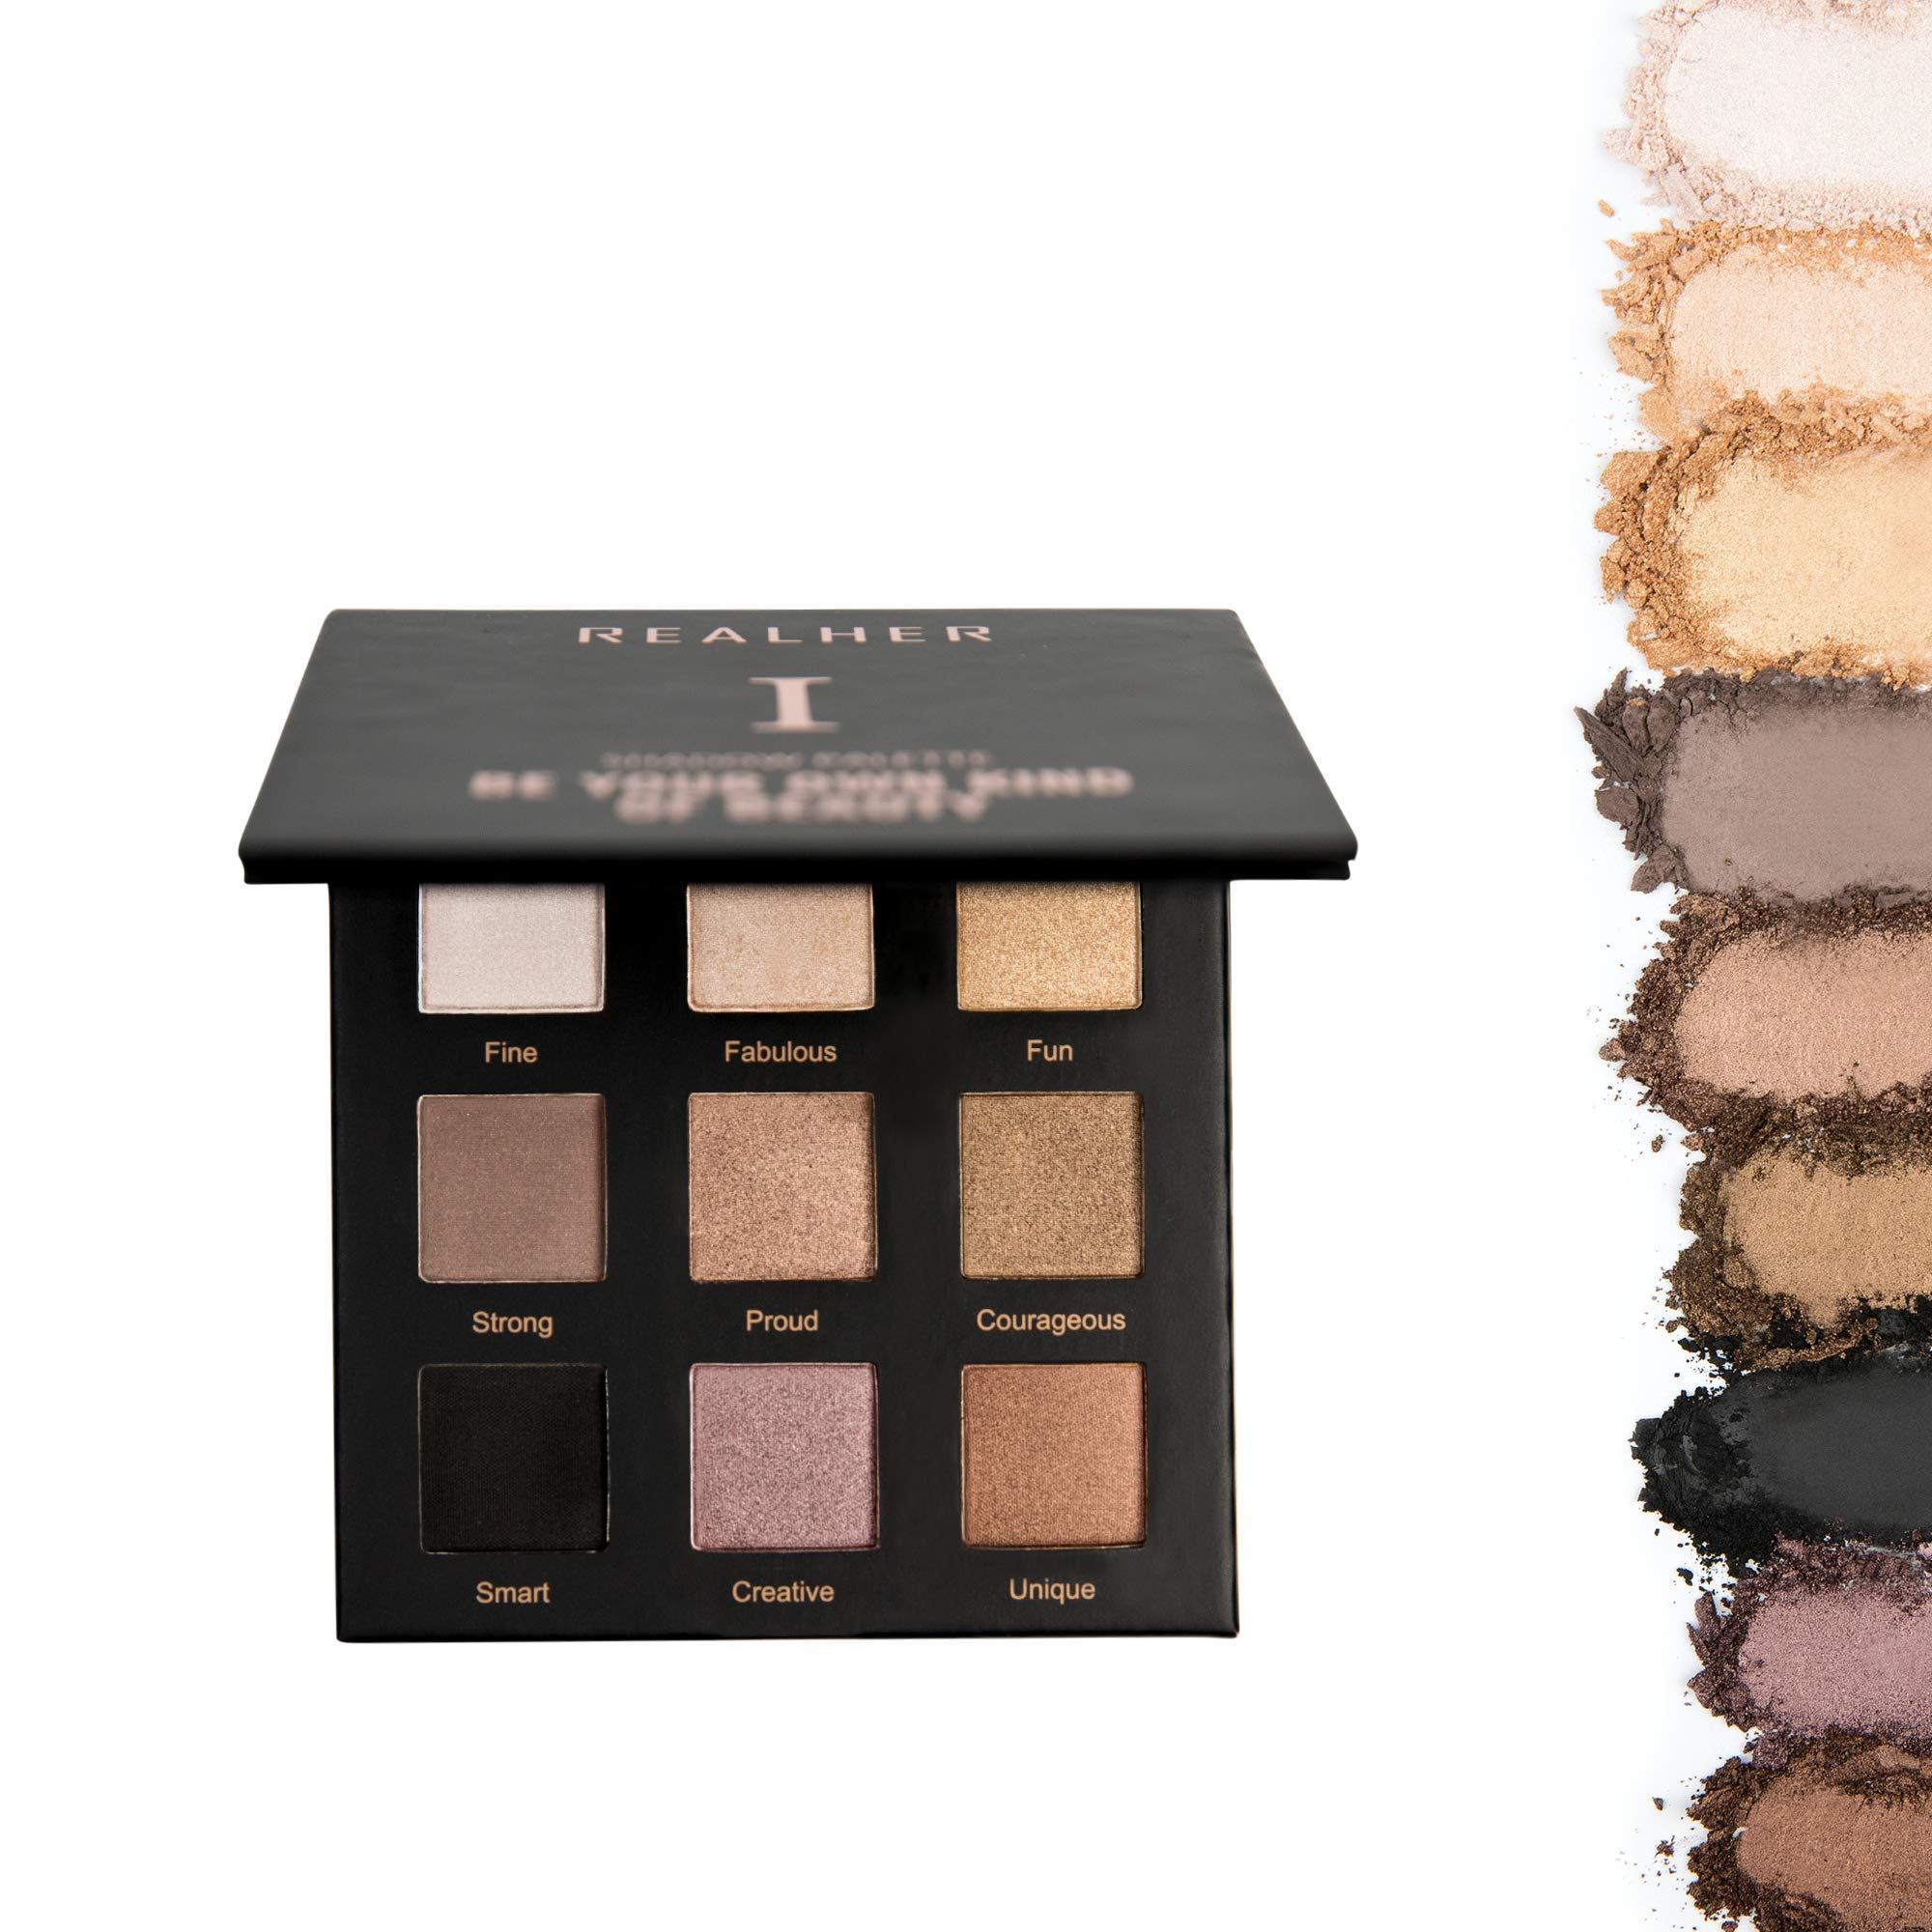 REALHER Eyeshadow Palette I- Be Your Own Kind Of Beauty (Nudes)